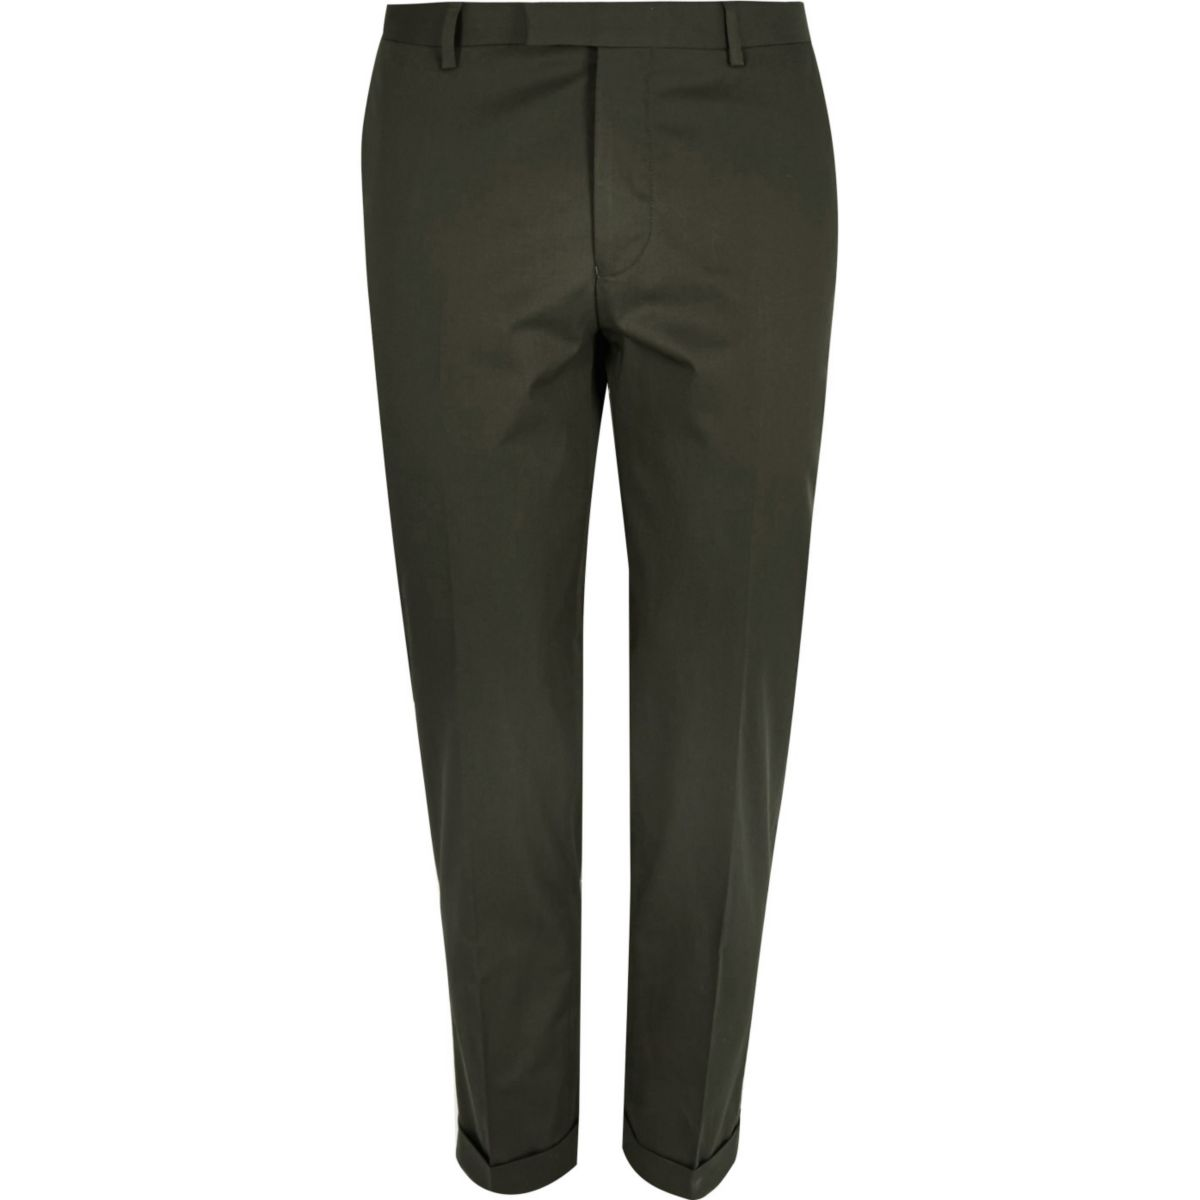 Olive green skinny suit trousers